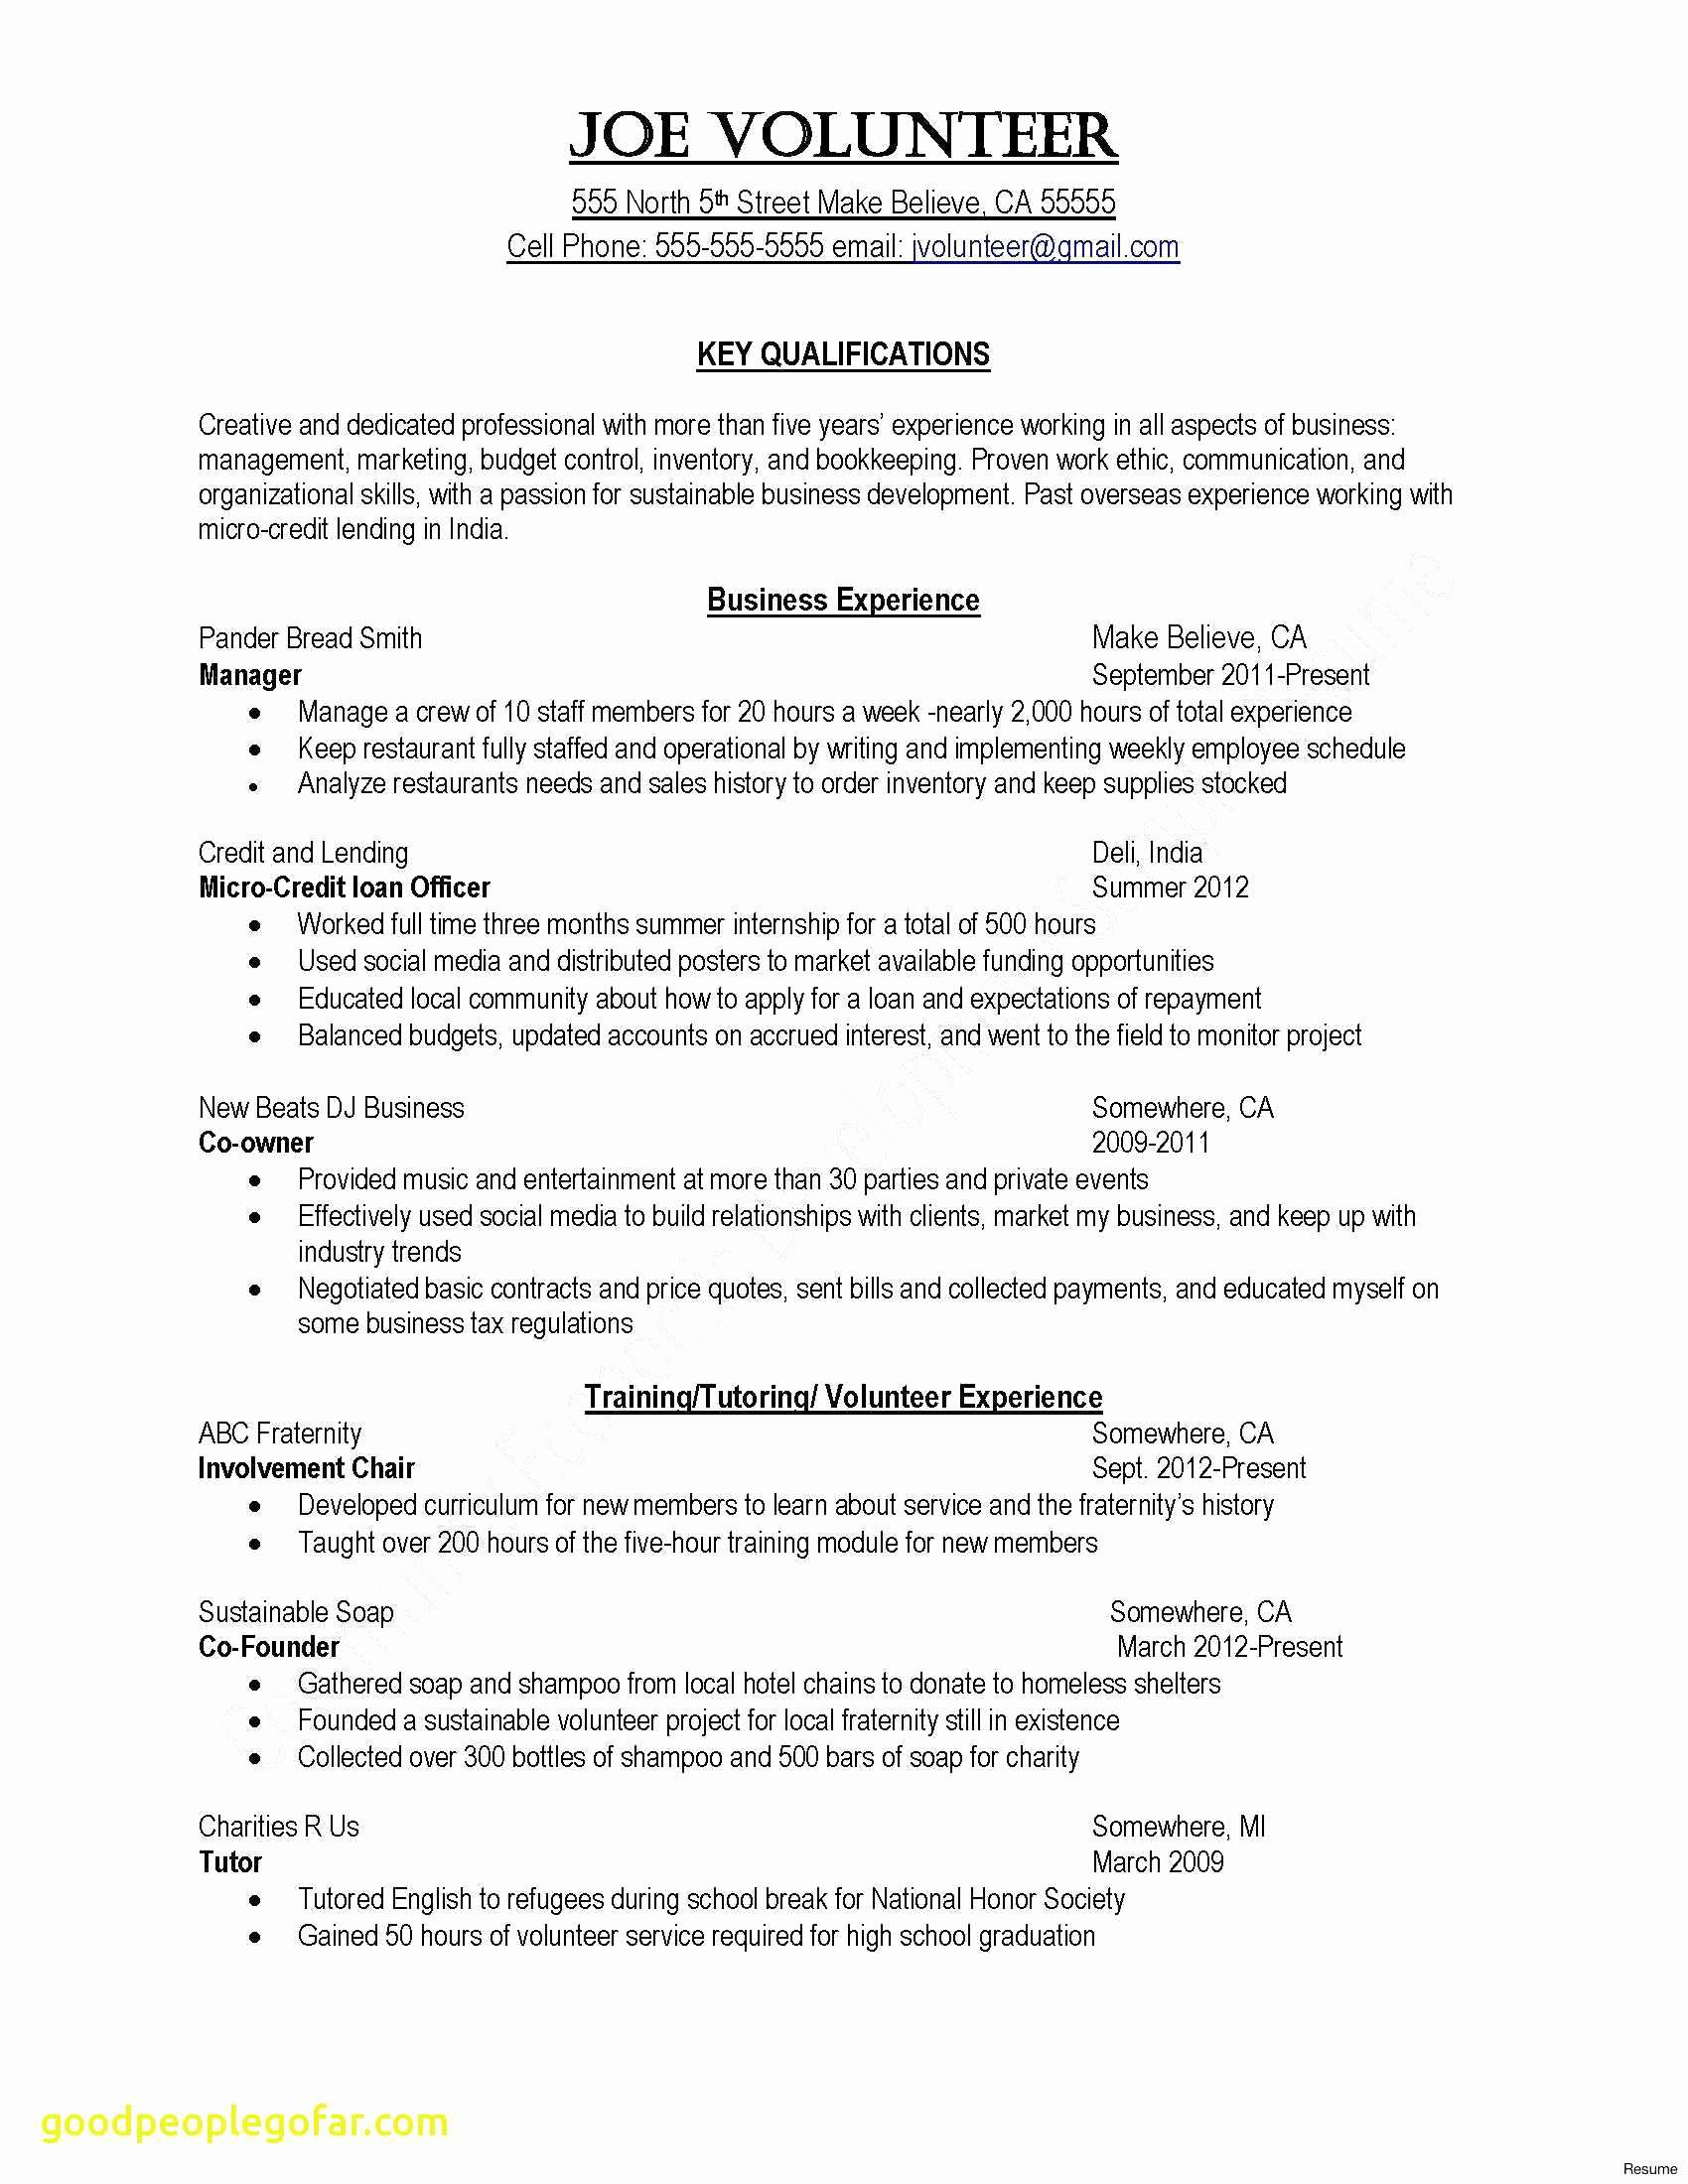 Resume for Med Surg Nurse - Nursing Resume Samples Luxury Med Surg Rn Resume Examples